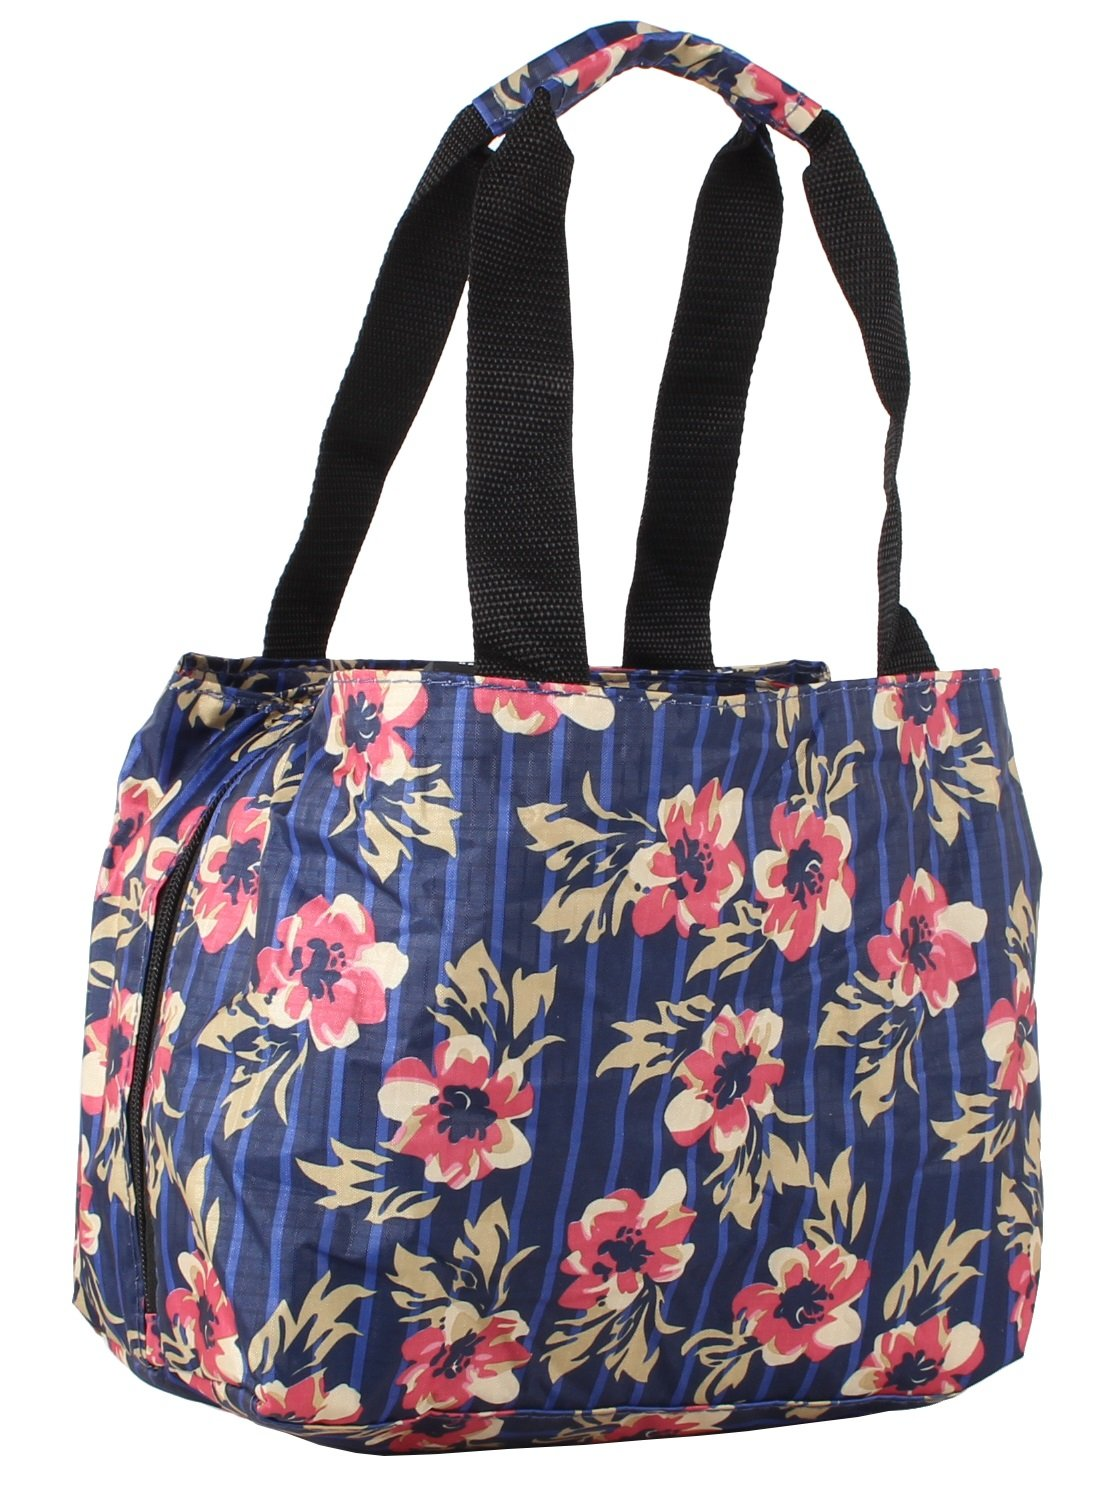 Bangles Lavender Nicole Miller of New York Insulated Lunch Cooler 11 Lunch Tote